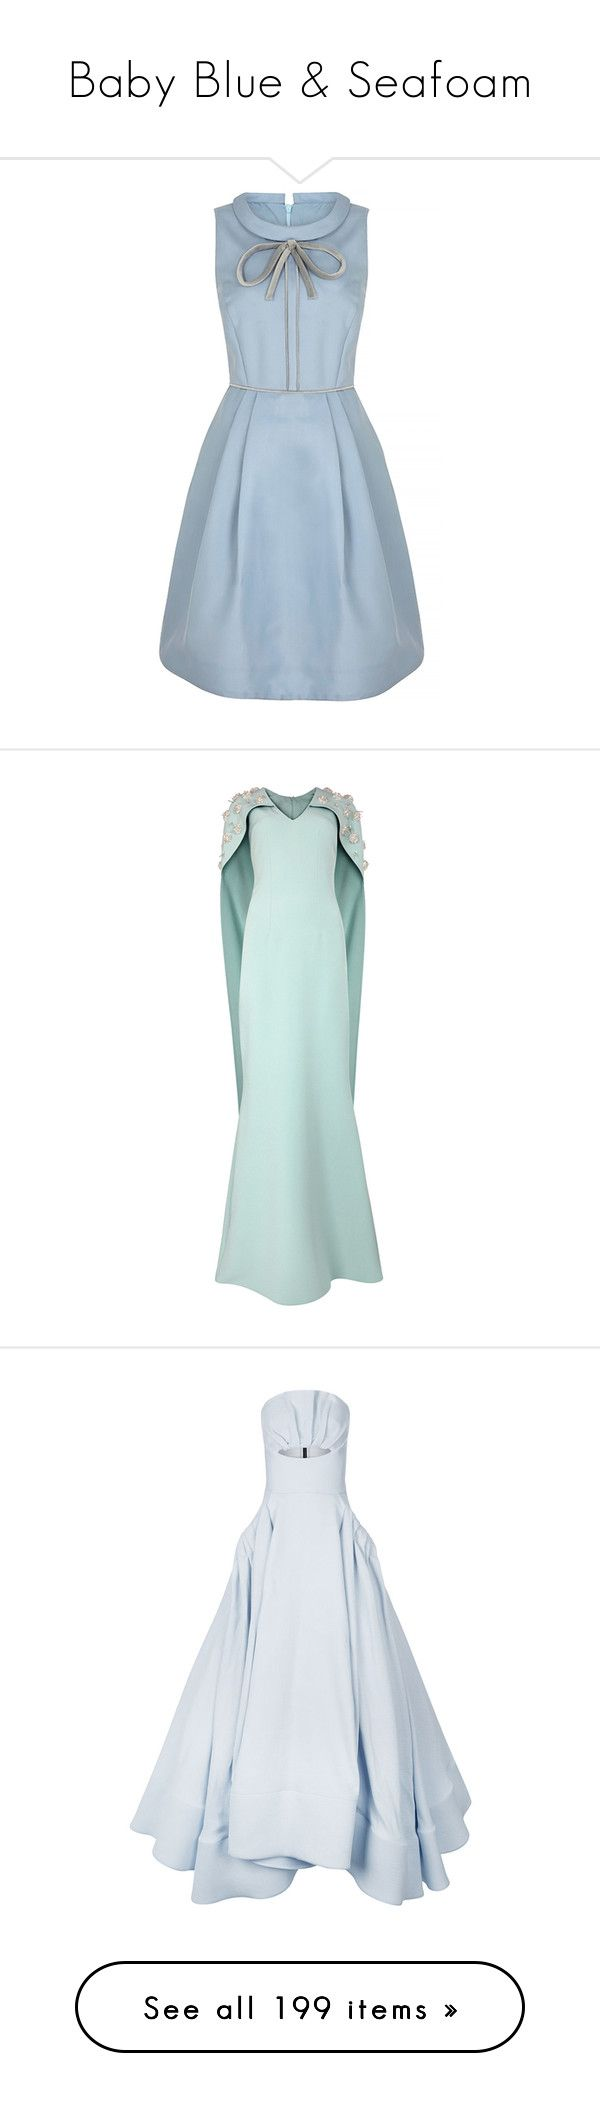 """Baby Blue & Seafoam"" by brassbracelets ❤ liked on Polyvore featuring dresses, vestidos, blue party dress, night out dresses, holiday party dresses, going out dresses, bow neck dress, gowns, long dress and long dresses"